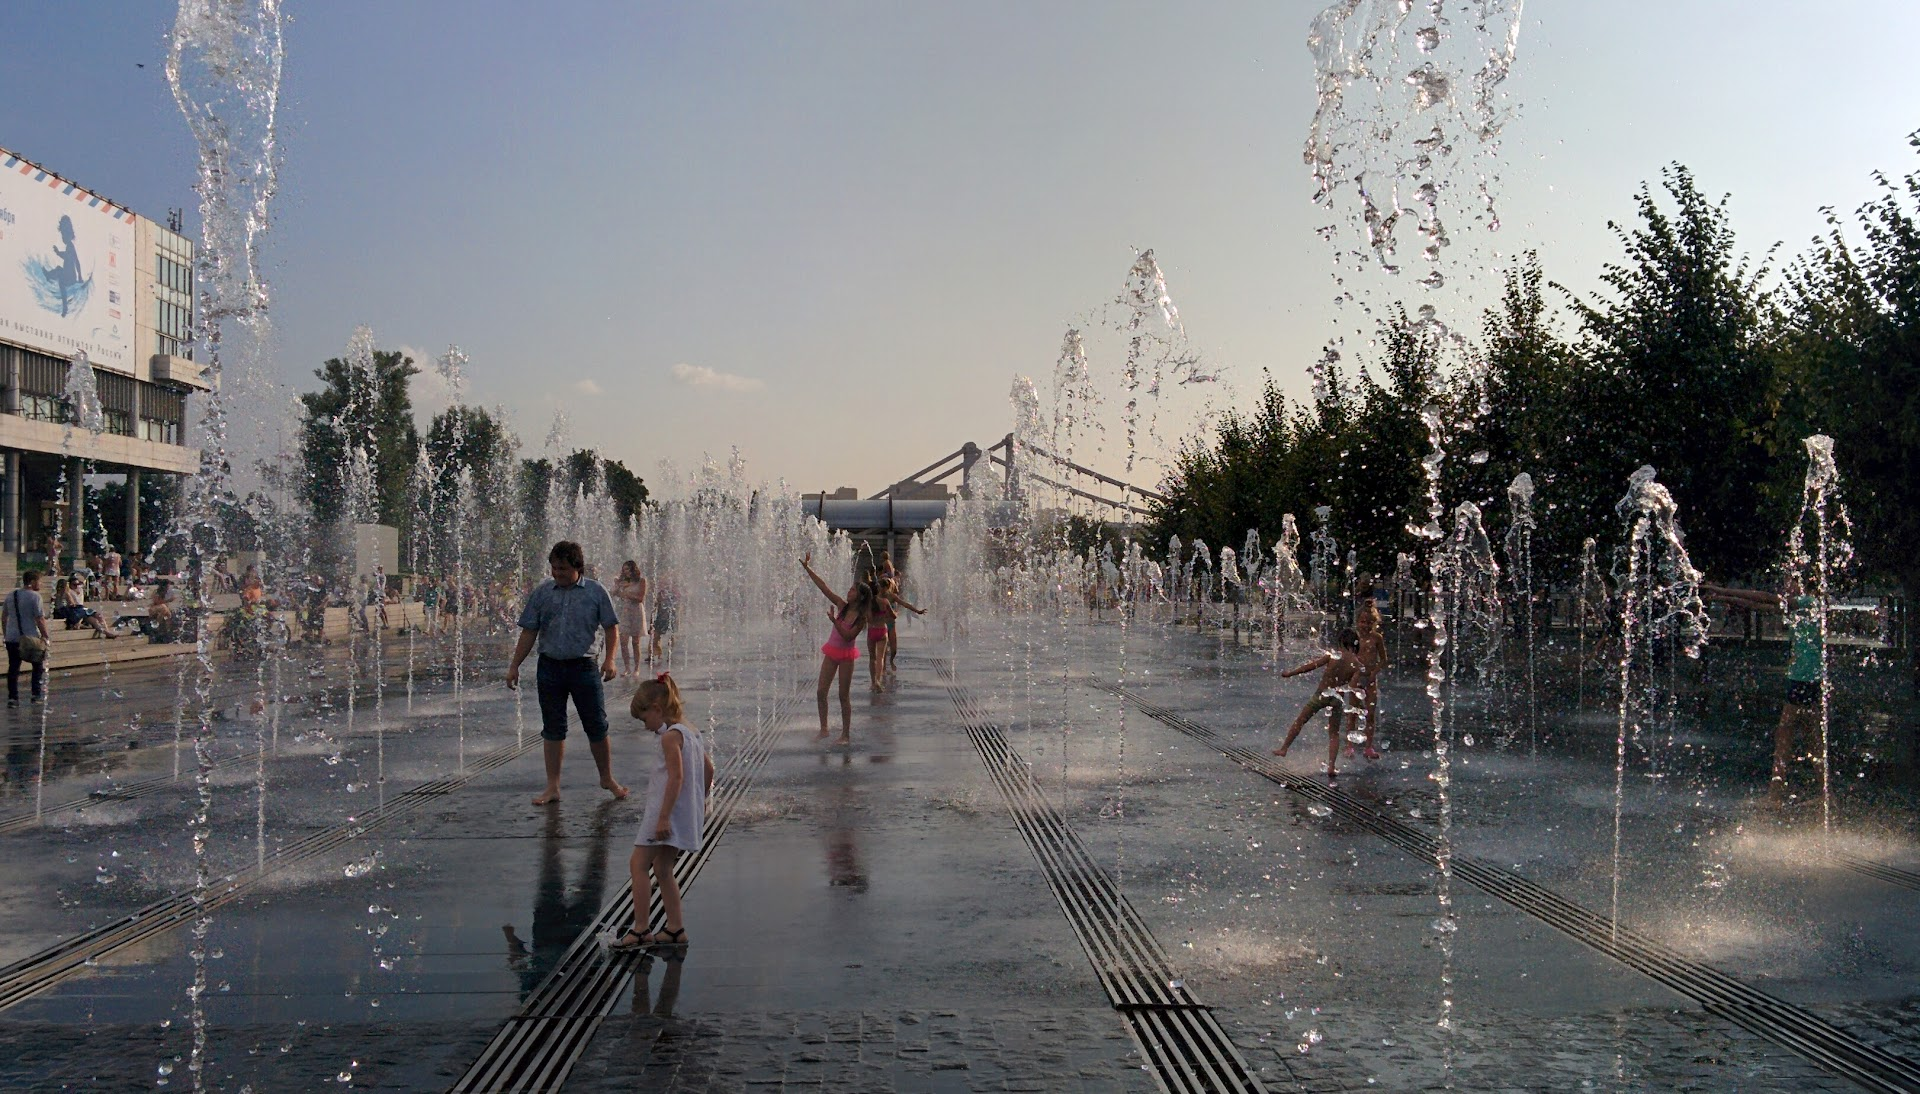 Dancing with the fountains